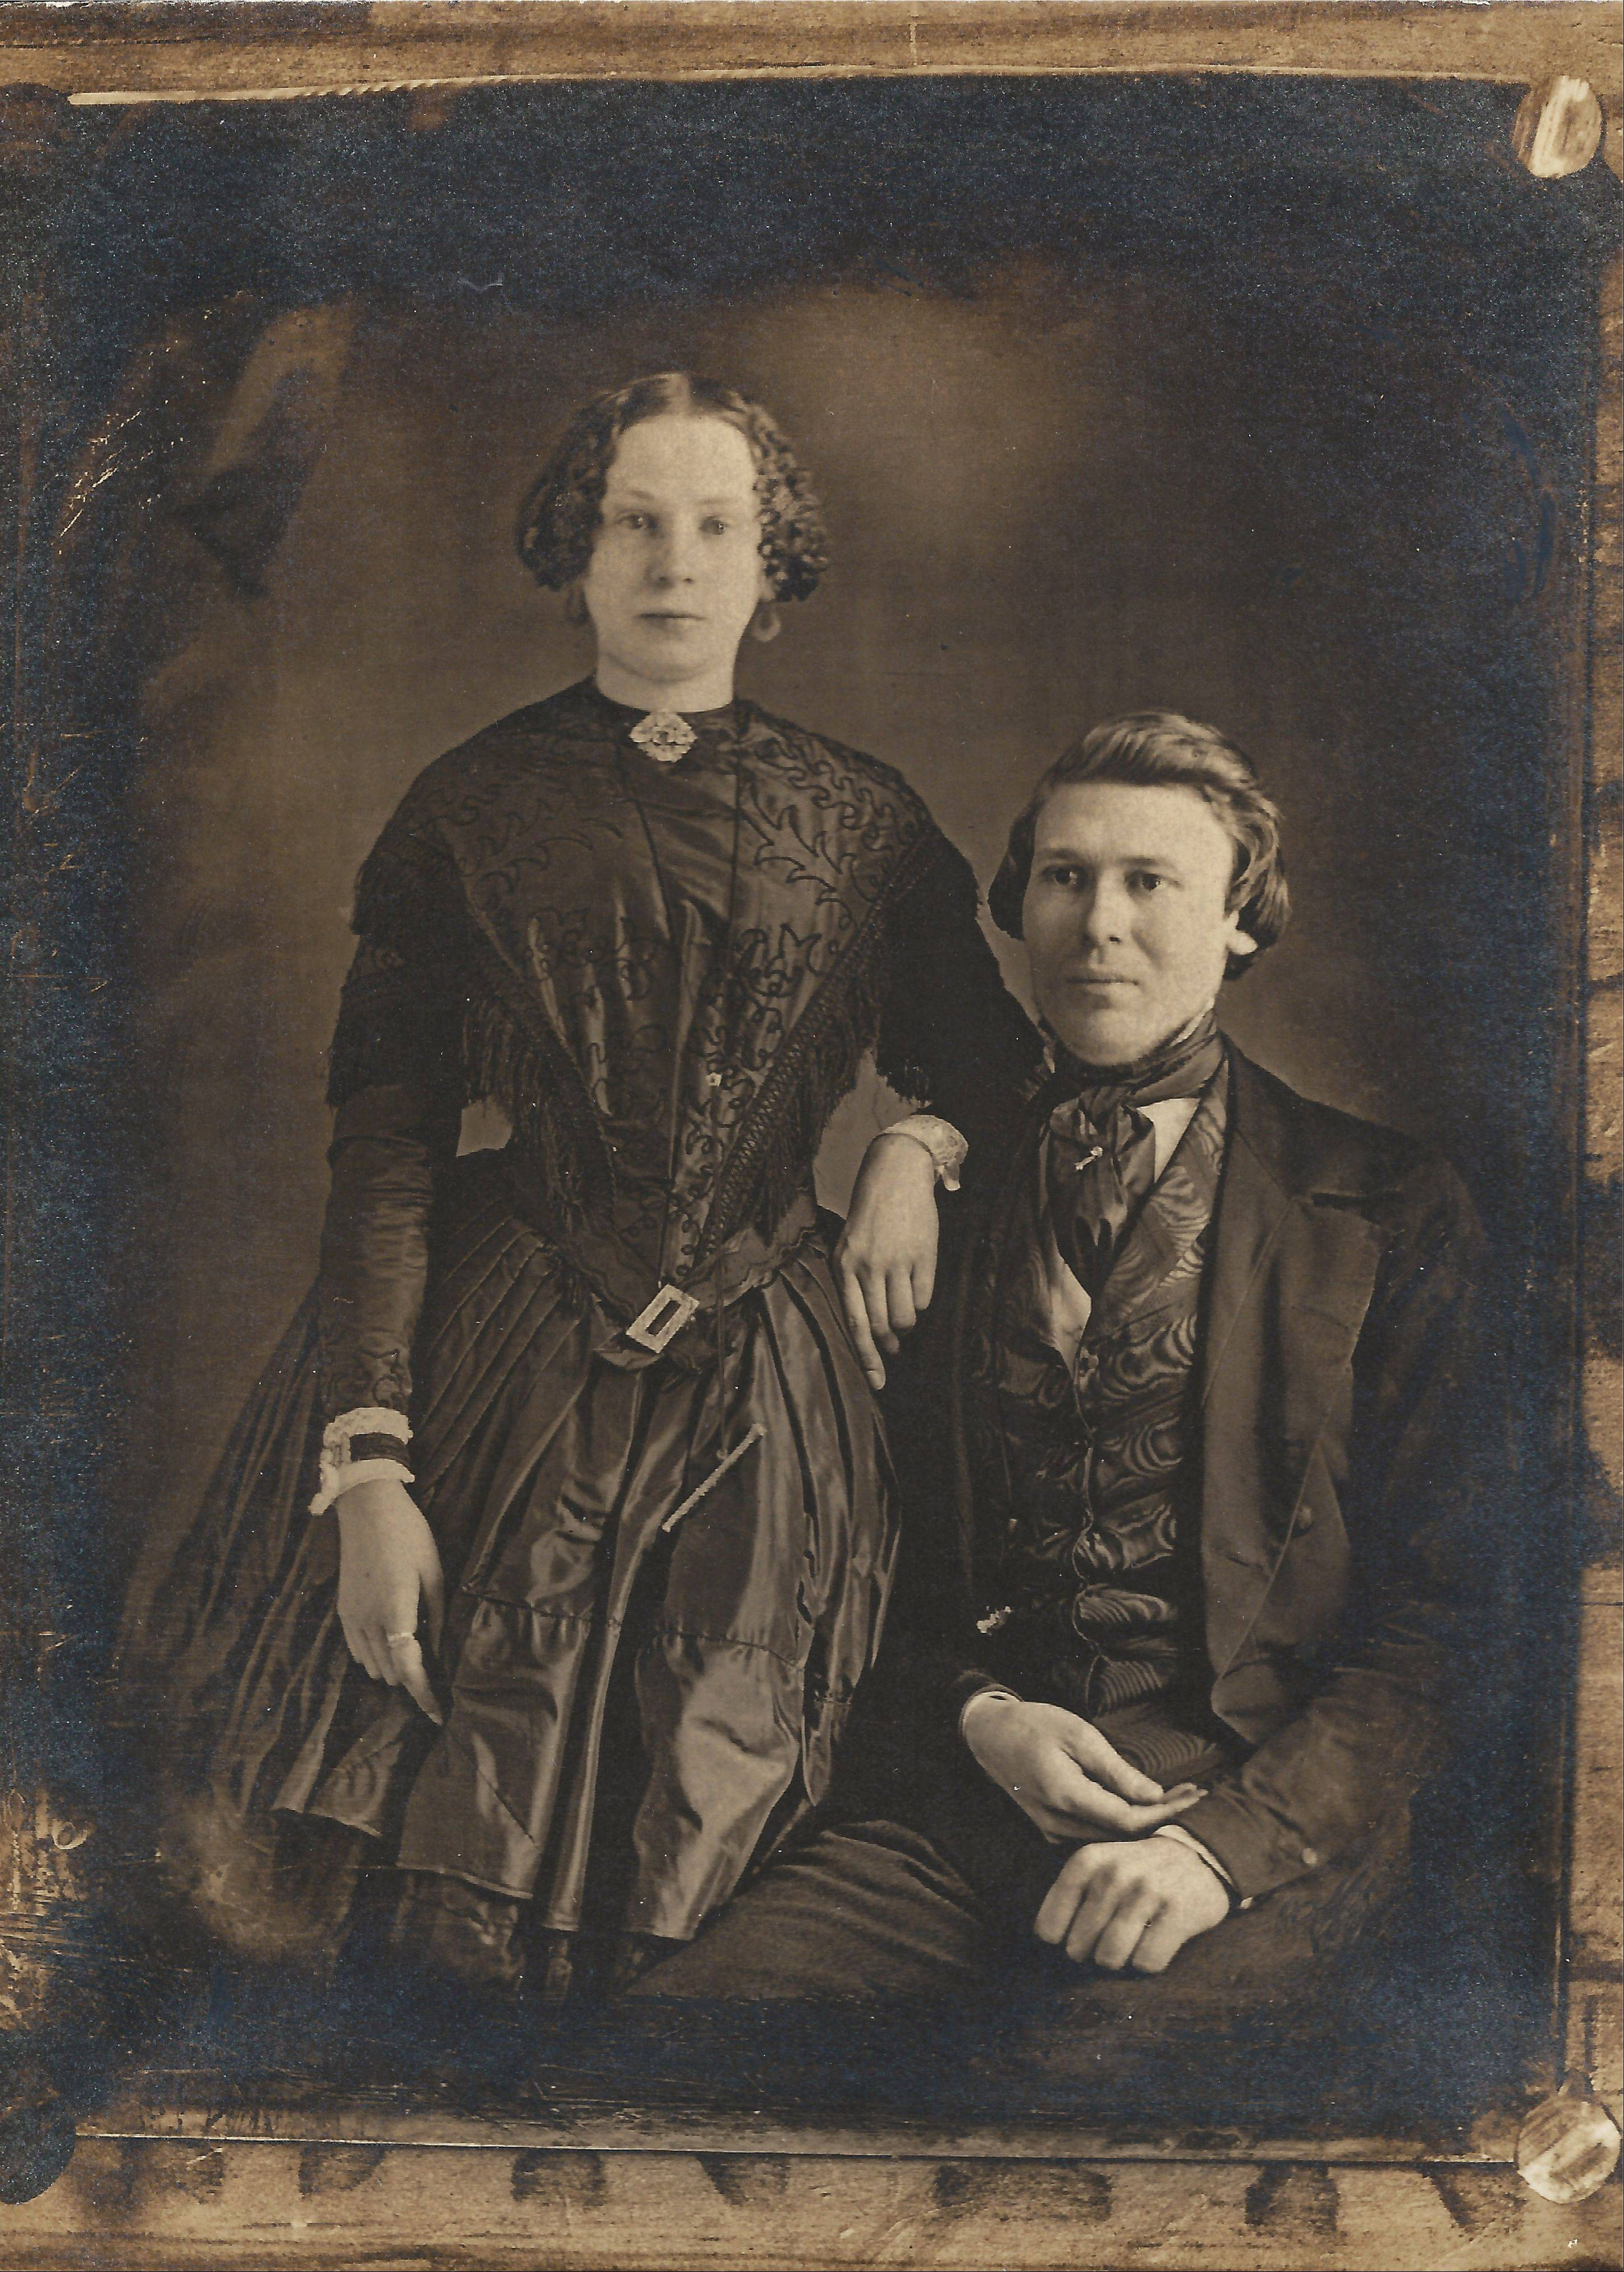 This circa-1856 photo provided by Matt Alberts shows Lowell Gilmore at age 25 with his wife, Mary Eliza Gilmore, age 19, at a sitting in Albany, N.Y. During the past year, Denver photographer Alberts learned the wet plate collodion process -- the same photographic process practiced by his ancestor, Lowell Gilmore, nearly 150 years ago.